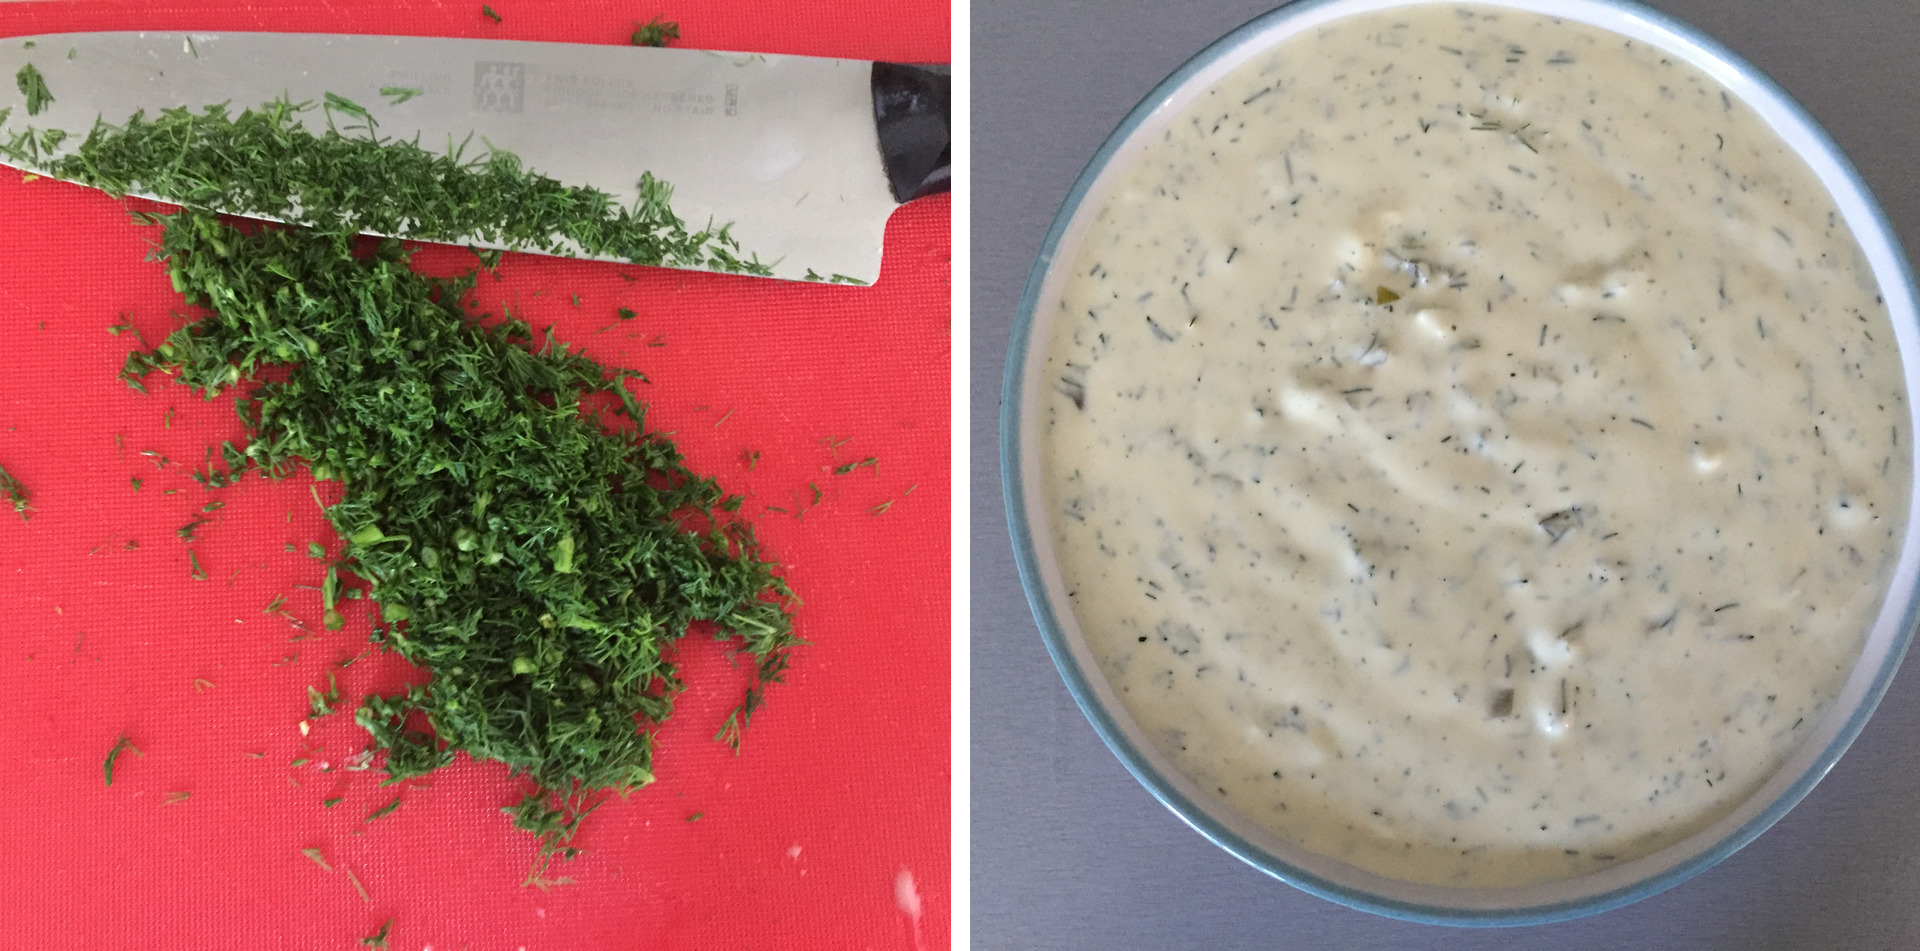 Finalizing the remoulade